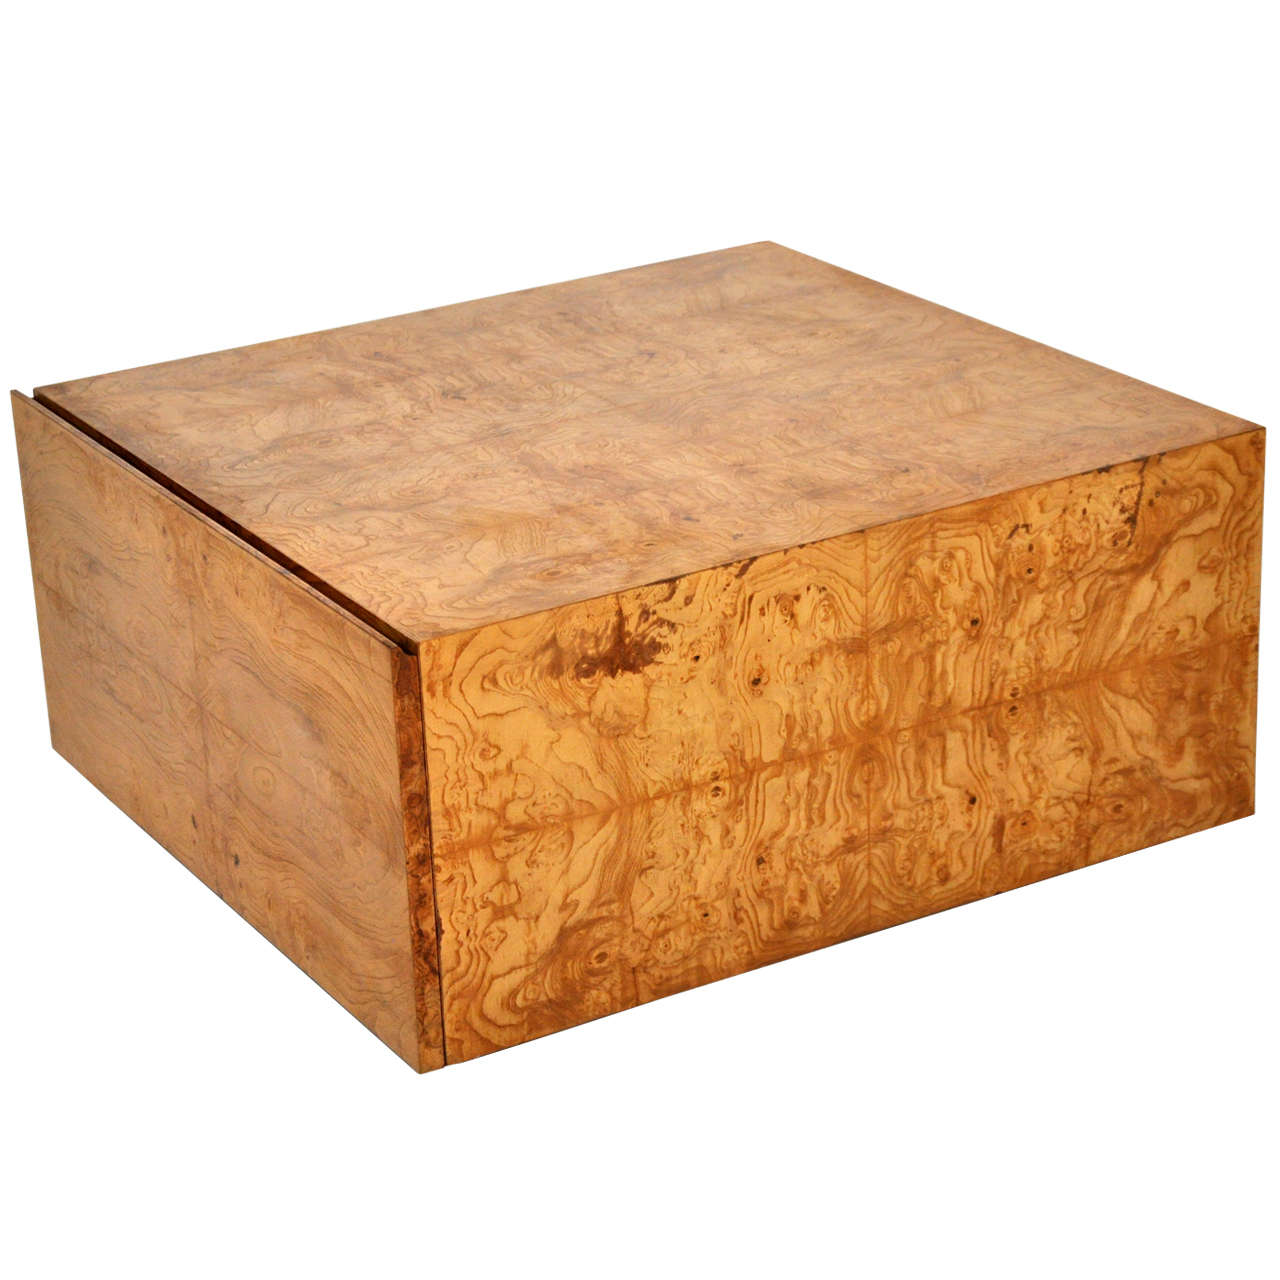 Milo Baughman Burl Wood Coffee Table With Storage At 1stdibs